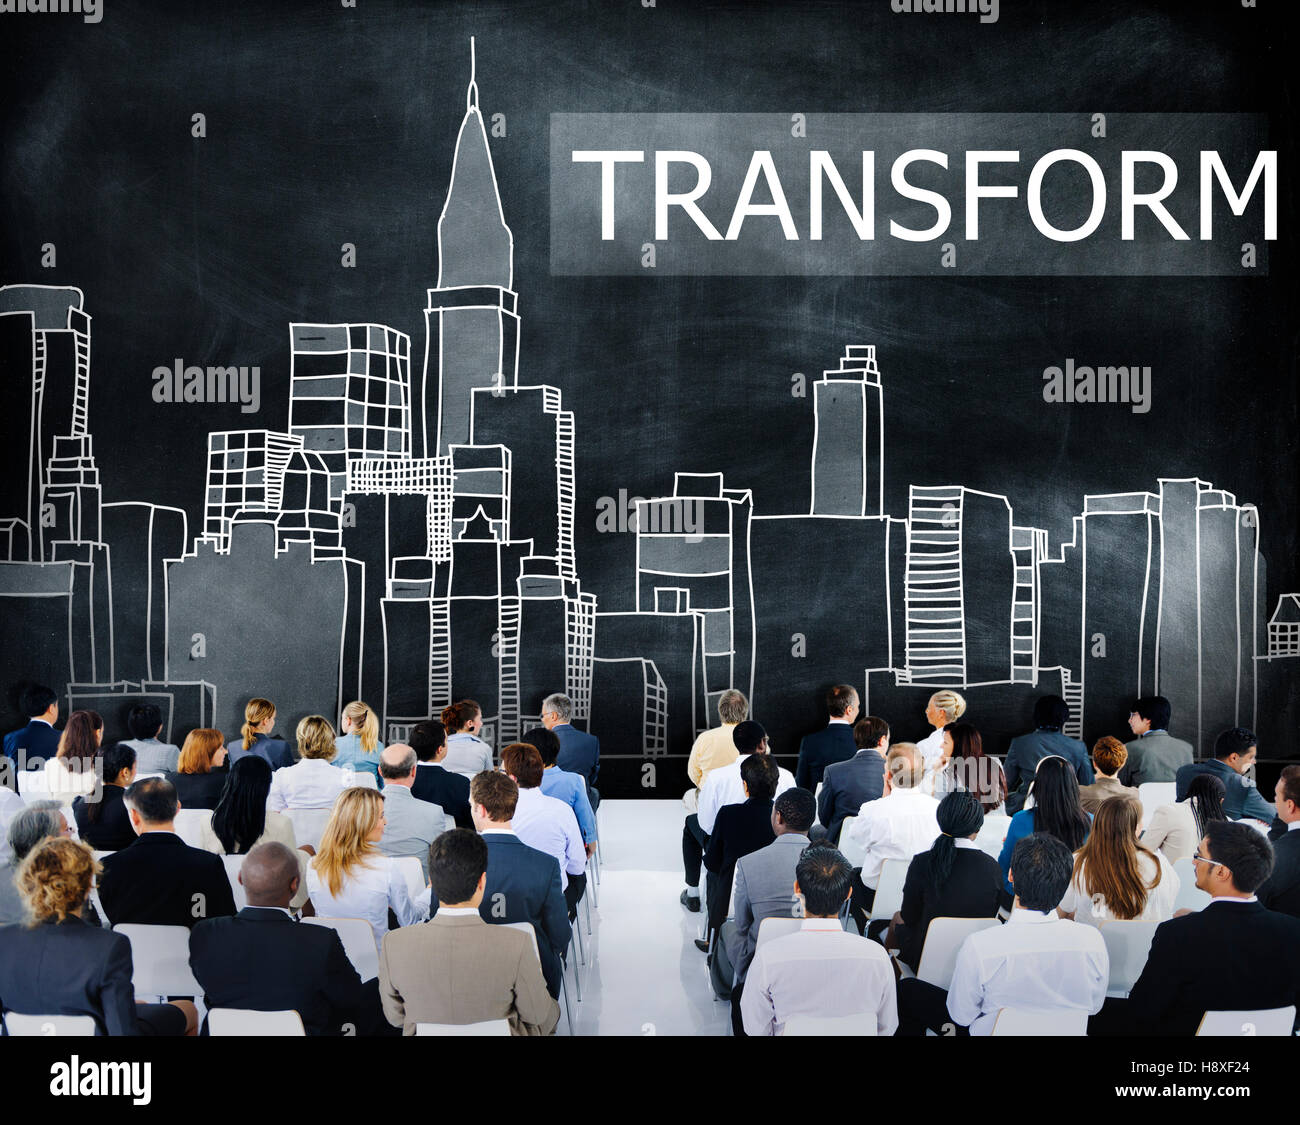 Transform Transformation Change Evolution Concept - Stock Image